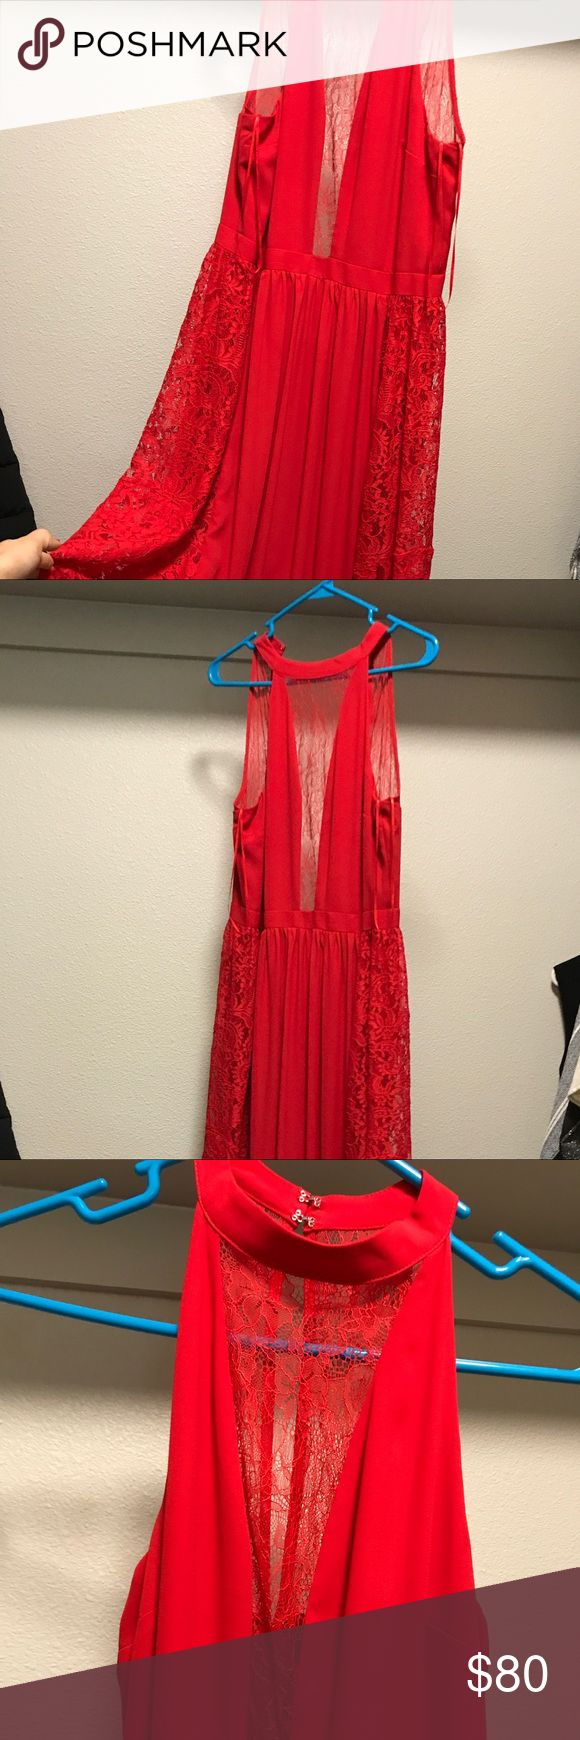 """Express Red Maxi Party Dress This dress is a stunning statement piece. It's been worn once - the tag is still intact. Has been hemmed as I'm 5'4"""" - works well for a short to medium girl while wearing heels. I wore 3-4 inch heels w this and it was perfect. It does have some dirt at the hem which would be easily removed at home or at the dry cleaner. See photos please. Material is a slinky poly-nylon blend with beautiful lace insets at the sides and at the collar. Really sexy but subtle. Skirt…"""